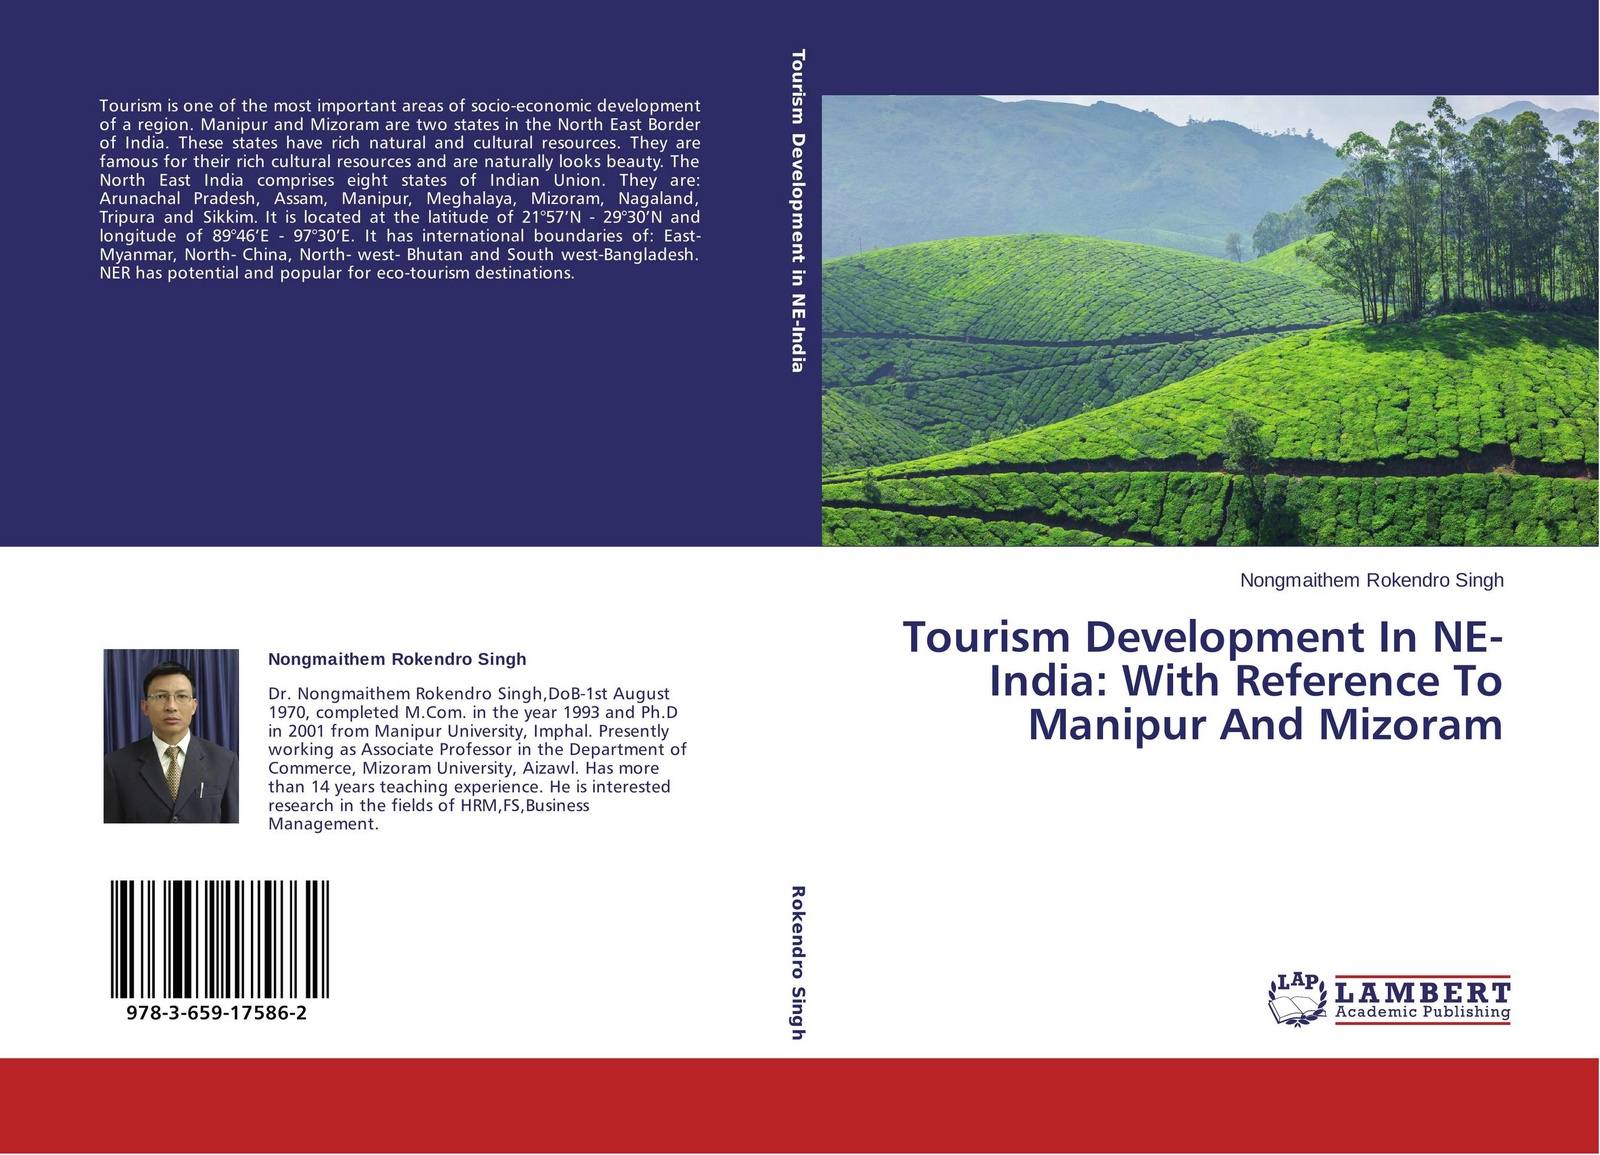 купить Nongmaithem Rokendro Singh Tourism Development In NE-India: With Reference To Manipur And Mizoram по цене 4983 рублей